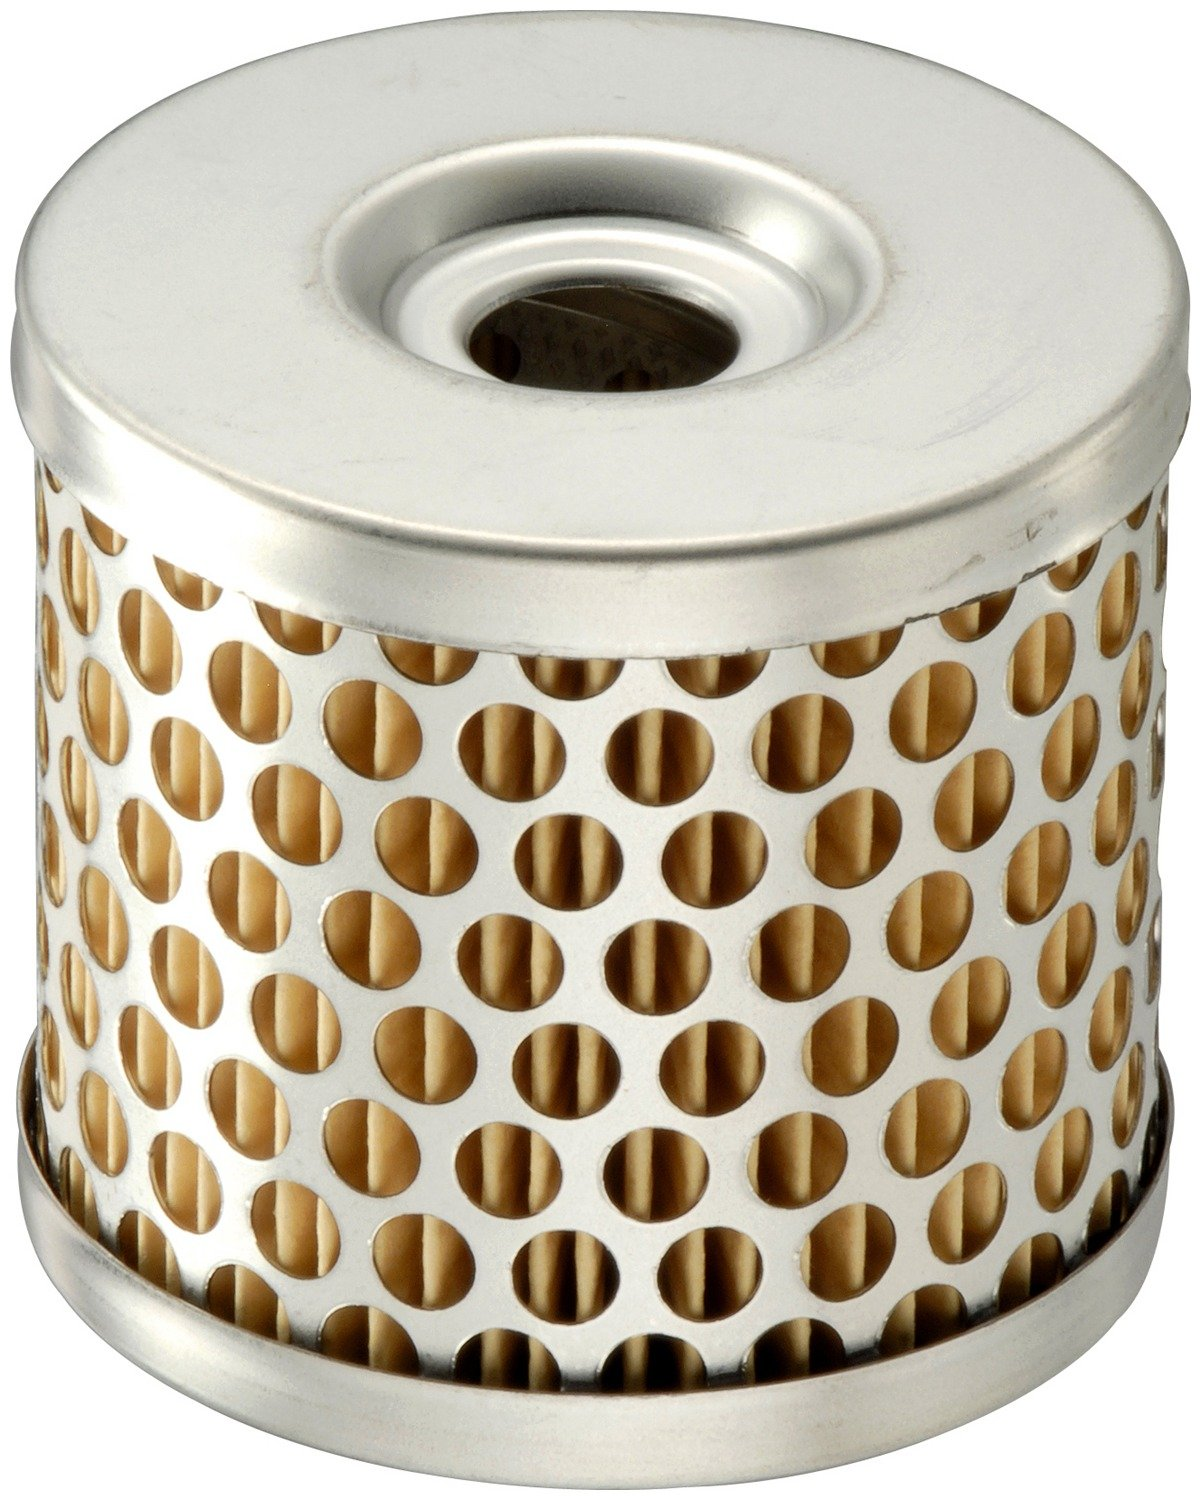 FRAM HPGC1 High Performance Fuel Filter Fram Group rm-FTA-HPGC1